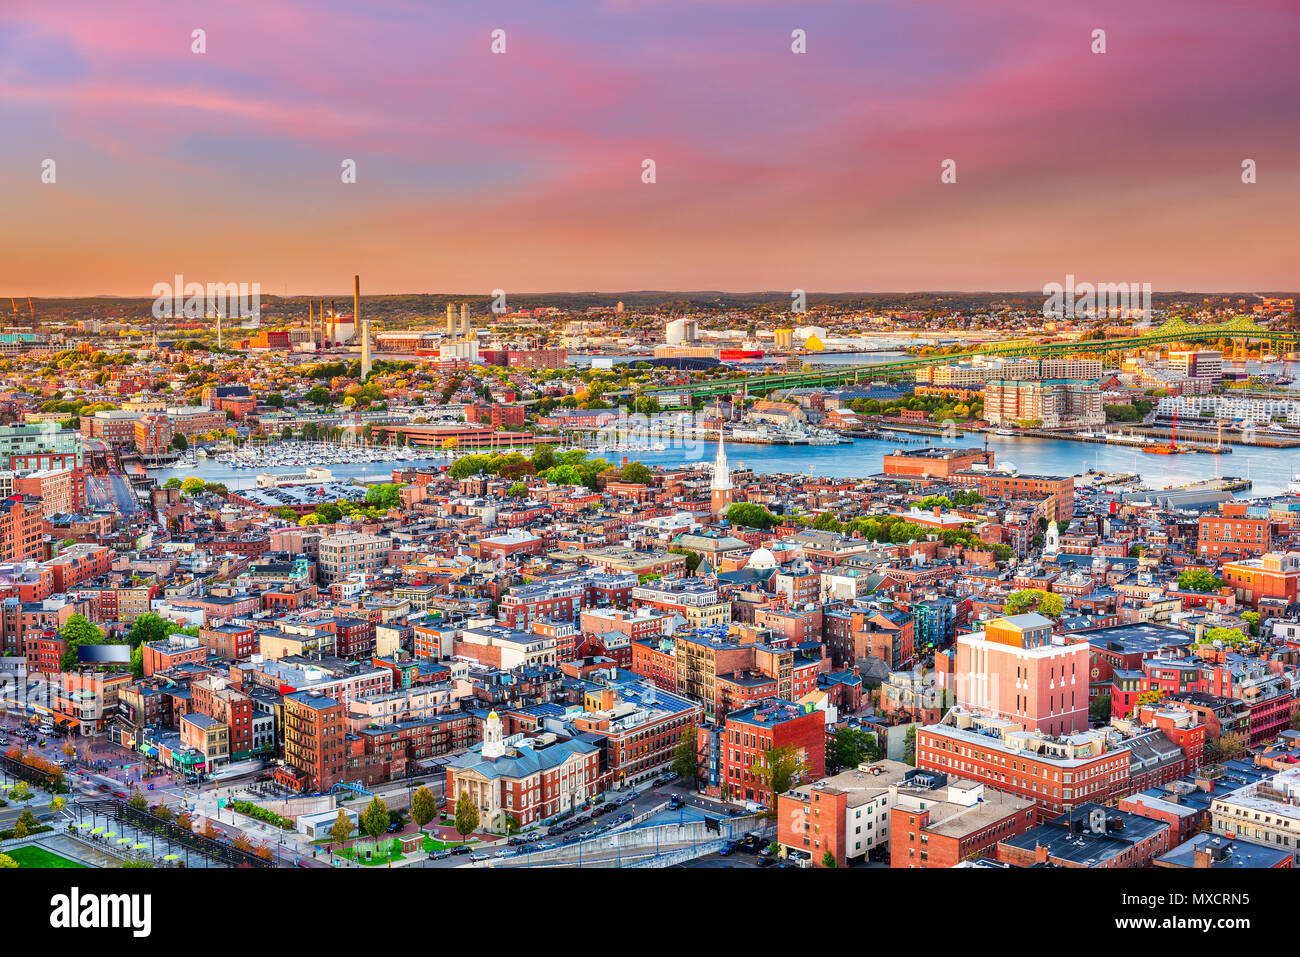 Boston, Massachusetts, USA cityscape over North End. - Stock Image